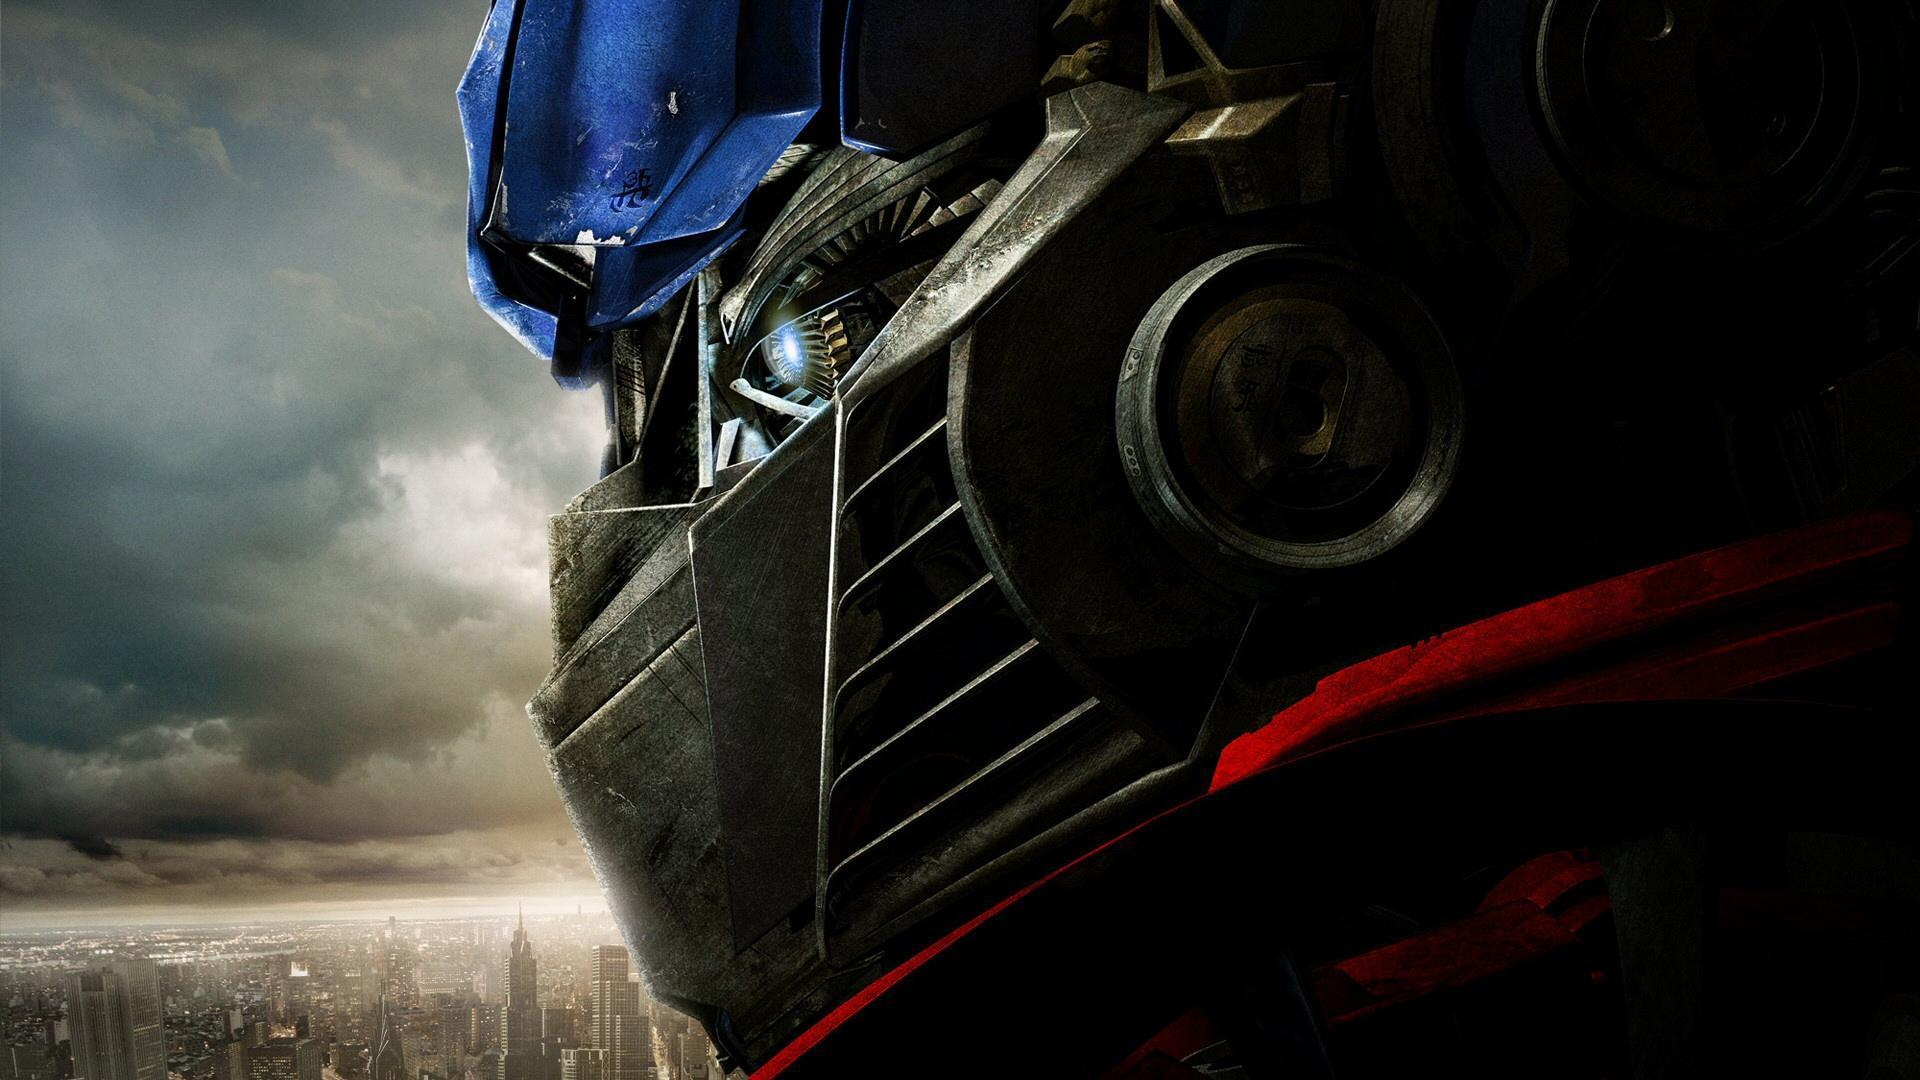 Wallpapers For > Transformers Optimus Prime Wallpapers Hd